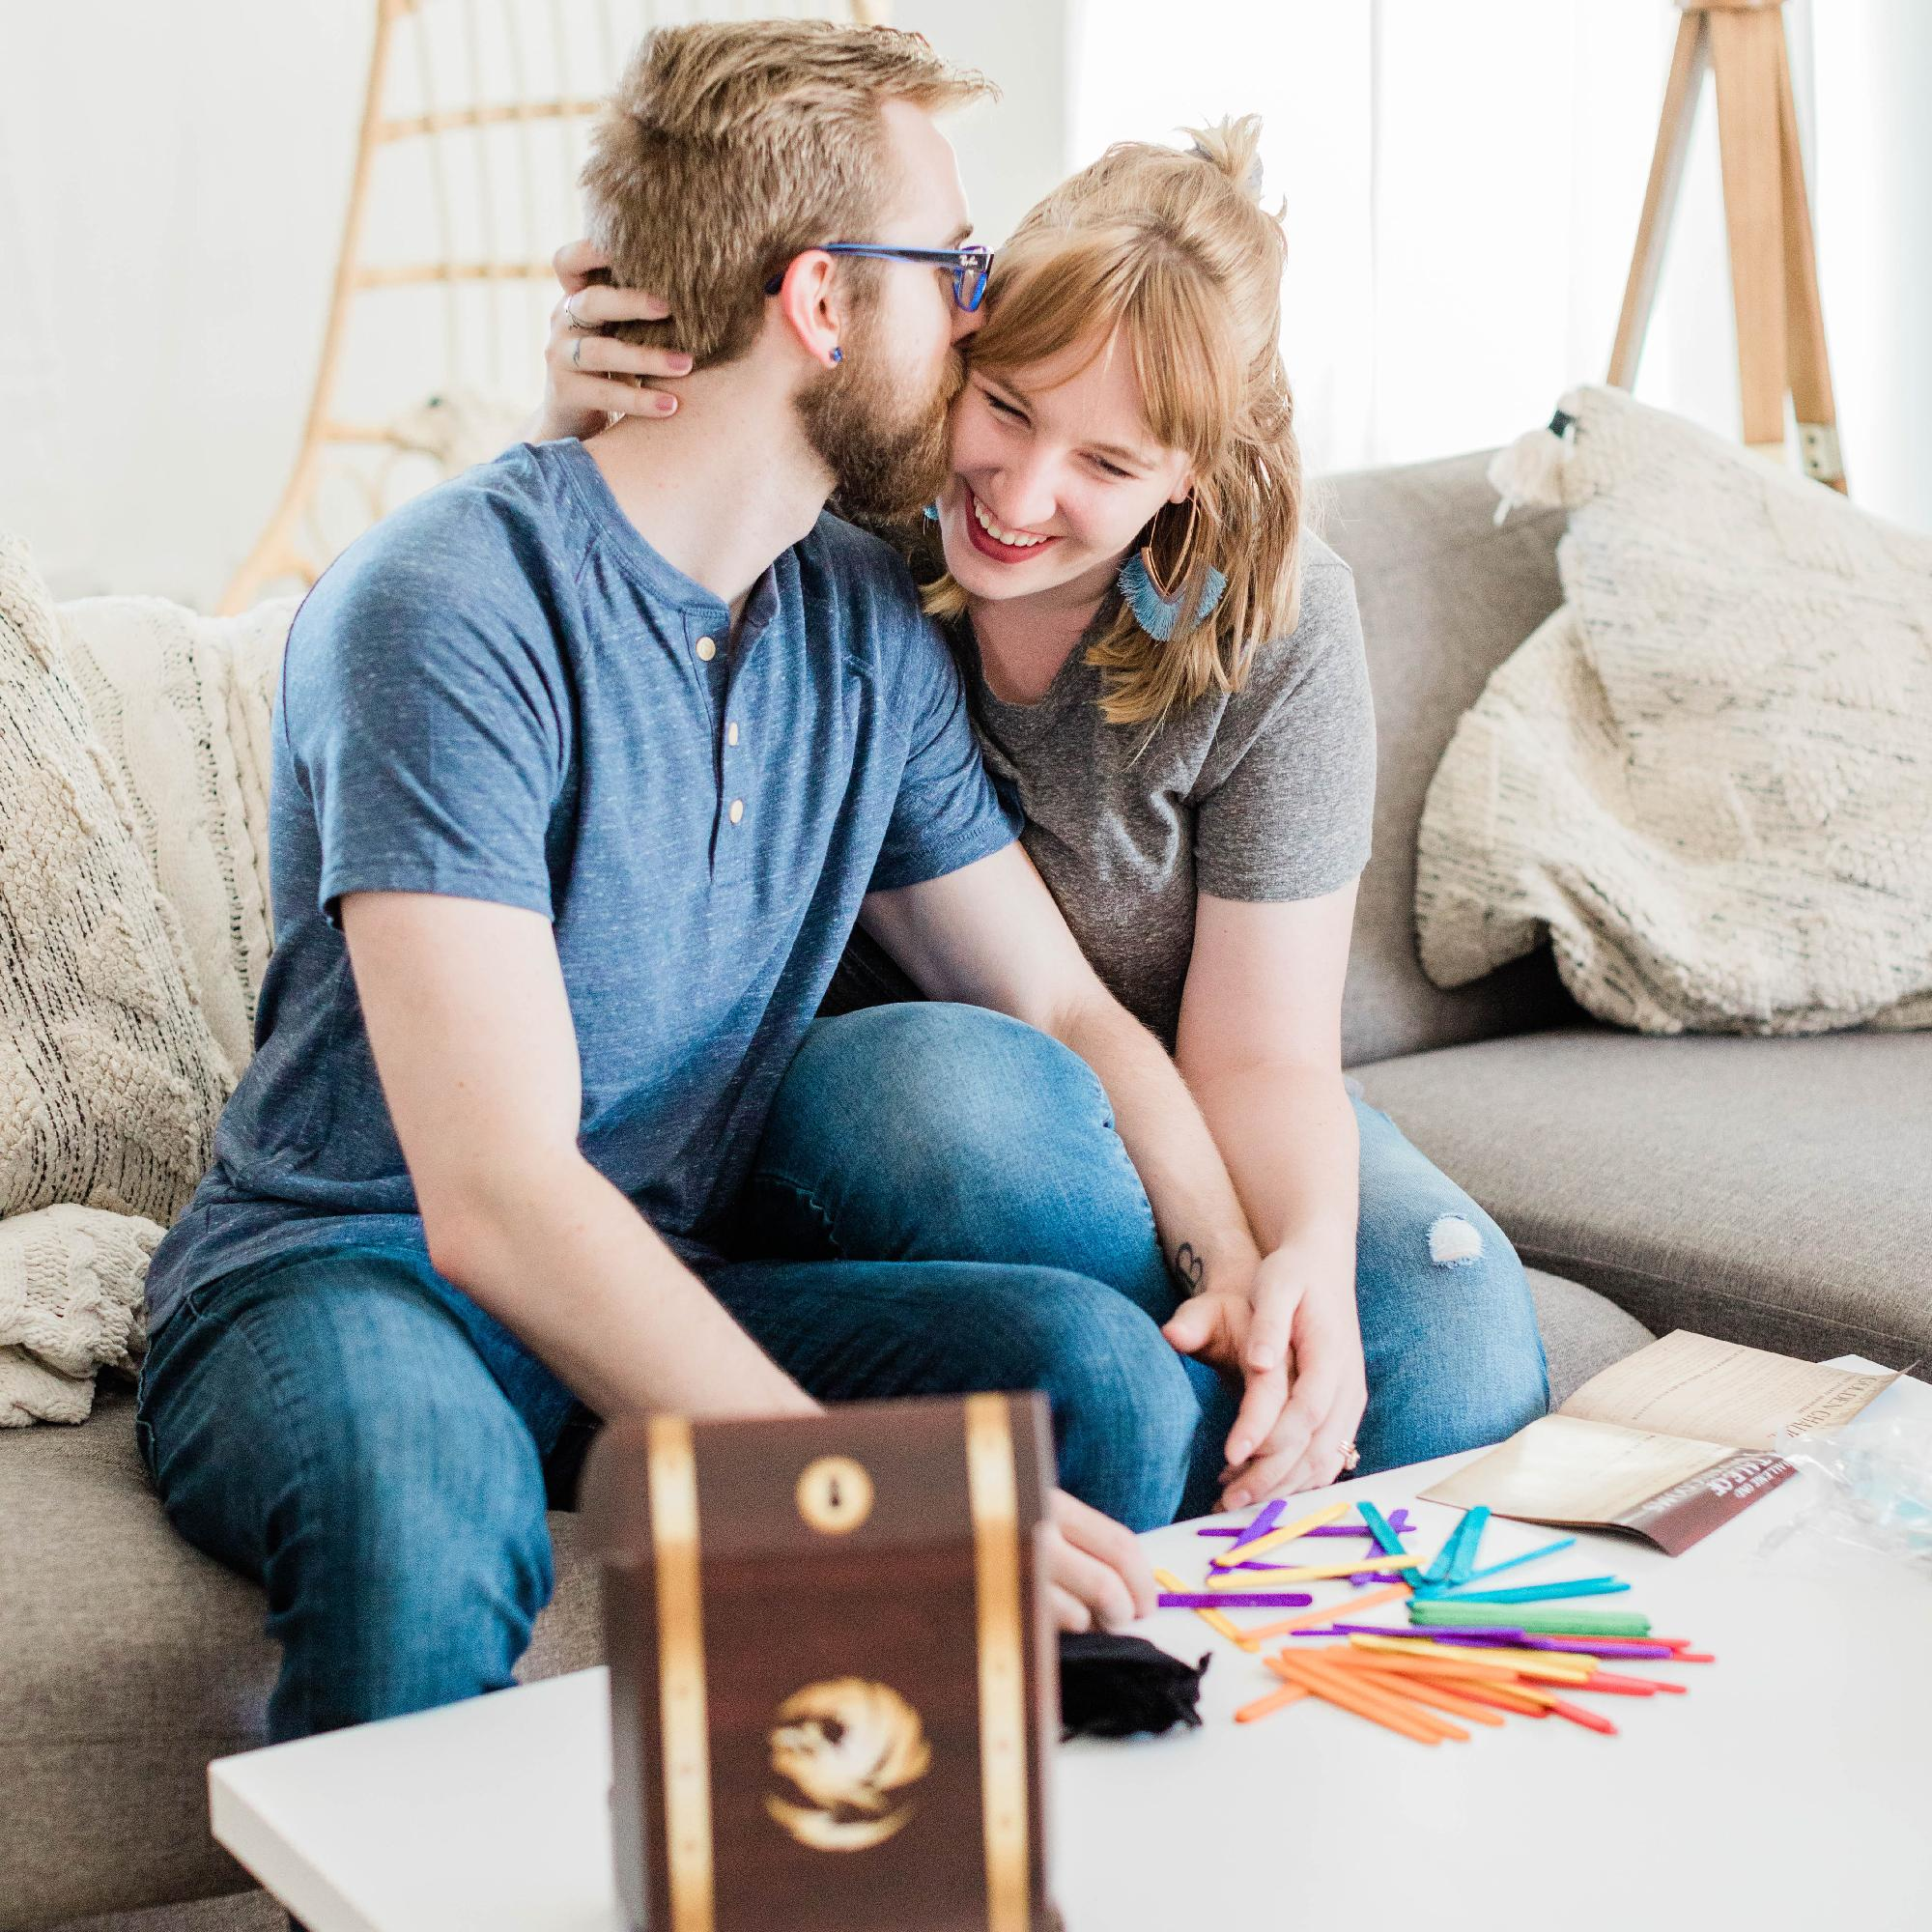 Crated with Love - Monthly Date Night Subscription Box: Month to Month